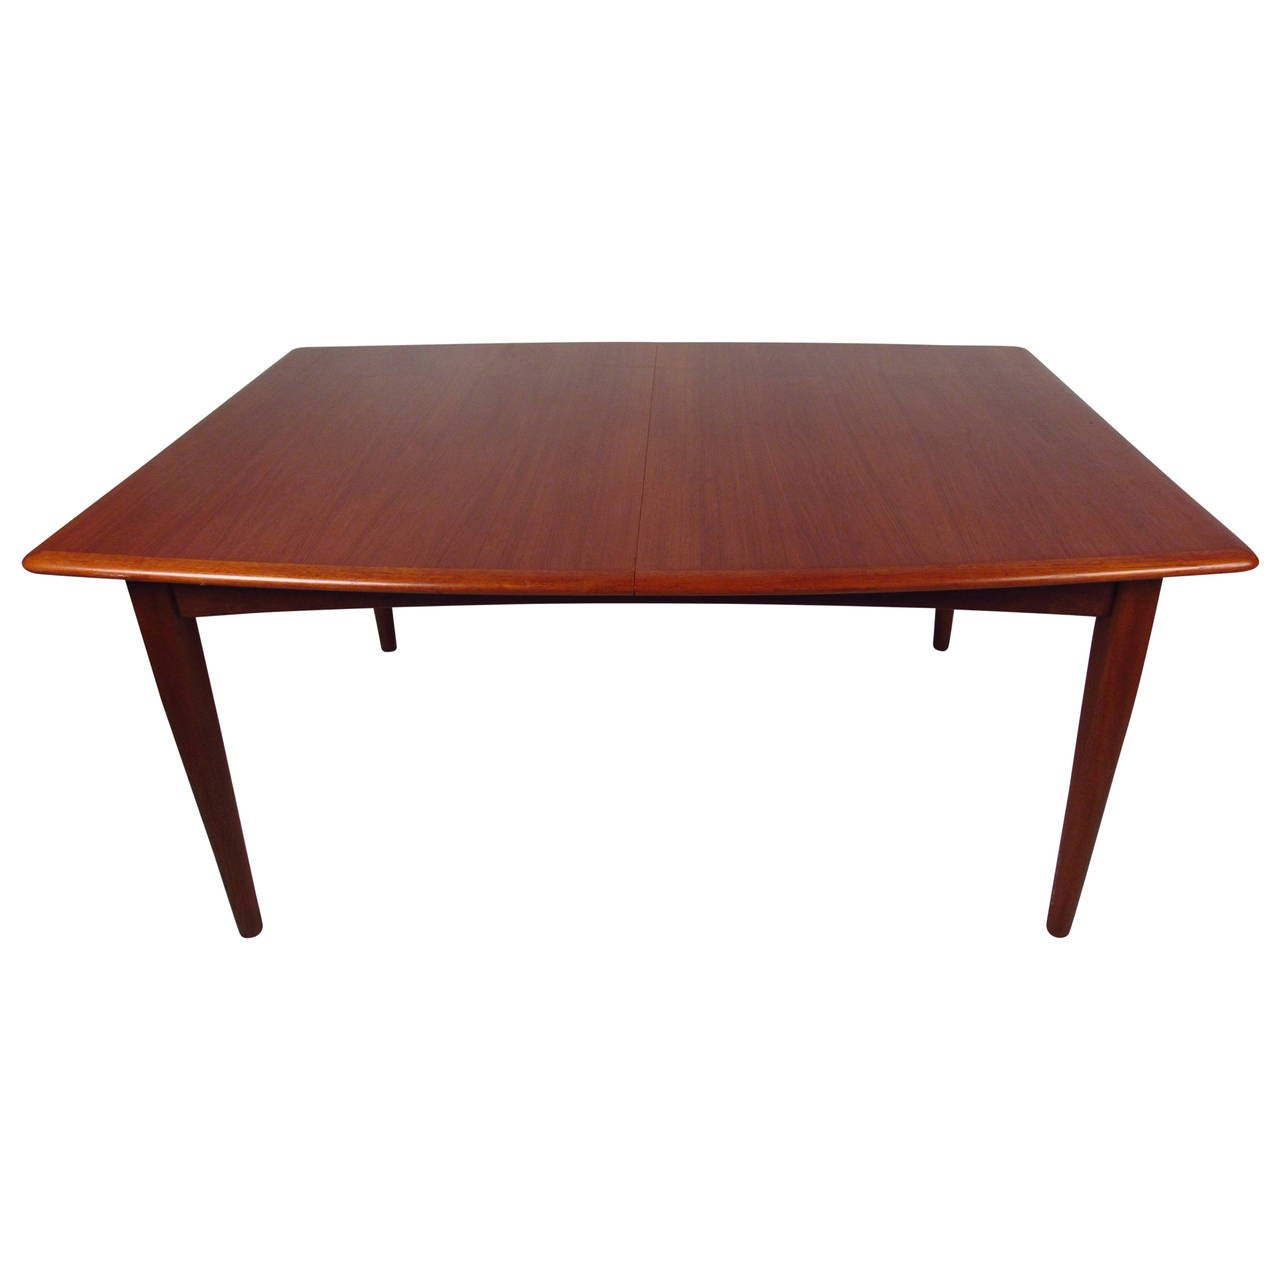 Danish Modern Butterfly Leaf Dining Table At 1stdibs